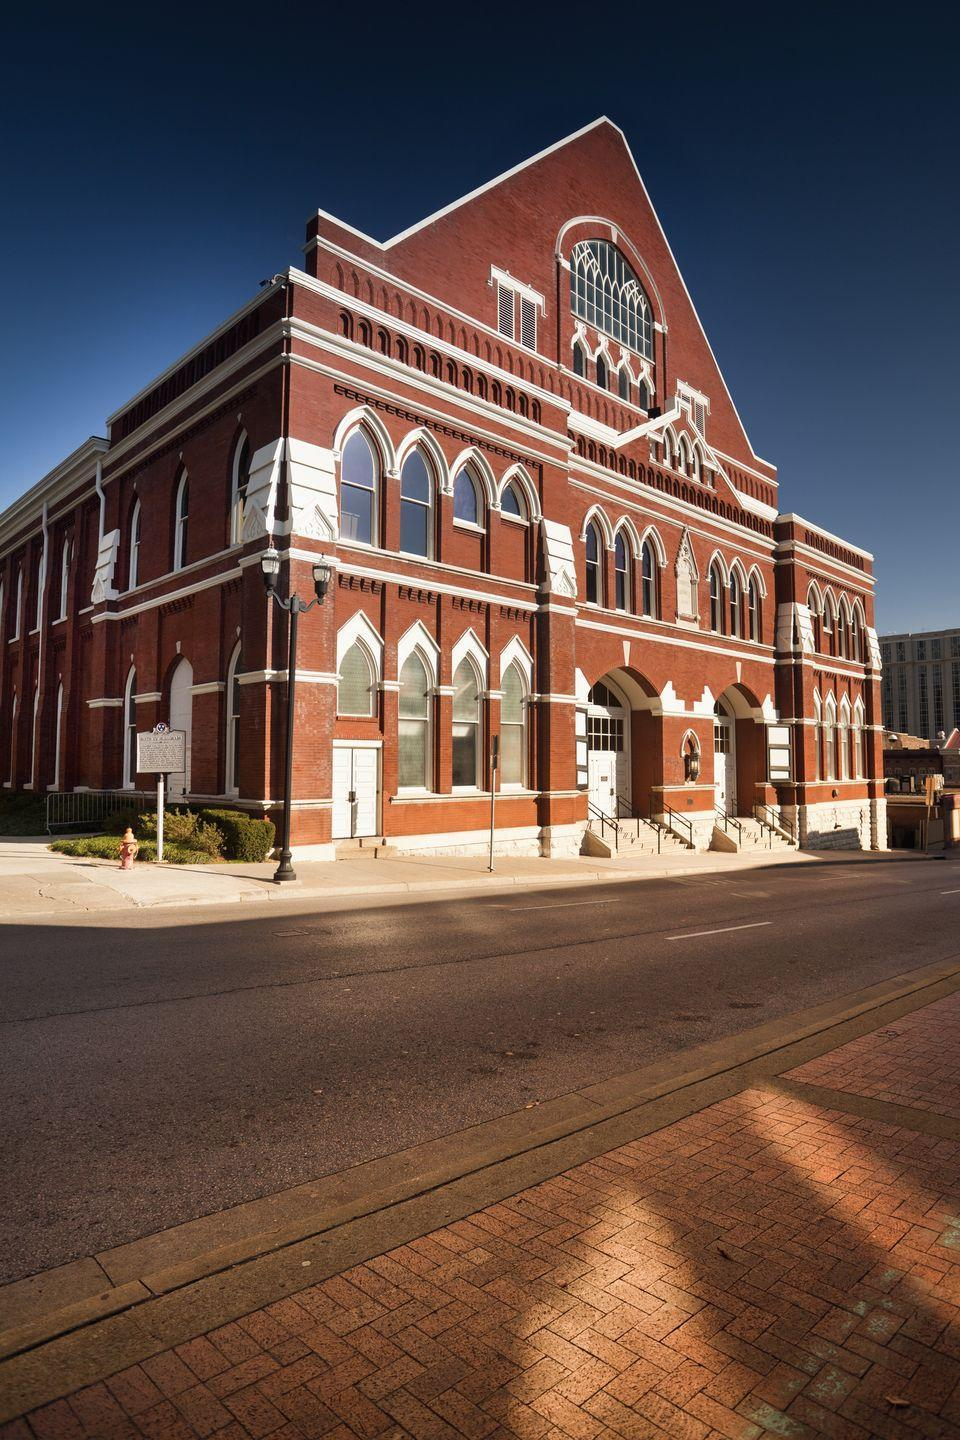 """<p>This 90-minute expedition focuses on the hauntings of the Civil War, with stops at some of Nashville's most haunted locales, including Ryman Auditorium and the Tennessee State Capitol.<br></p><p><a class=""""link rapid-noclick-resp"""" href=""""https://go.redirectingat.com?id=74968X1596630&url=https%3A%2F%2Fwww.tripadvisor.com%2FAttractionProductReview-g55229-d22903035-The_Ghosts_of_Nashville_Walking_Tour-Nashville_Davidson_County_Tennessee.html&sref=https%3A%2F%2Fwww.redbookmag.com%2Flife%2Fg37623207%2Fghost-tours-near-me%2F"""" rel=""""nofollow noopener"""" target=""""_blank"""" data-ylk=""""slk:LEARN MORE"""">LEARN MORE</a></p>"""